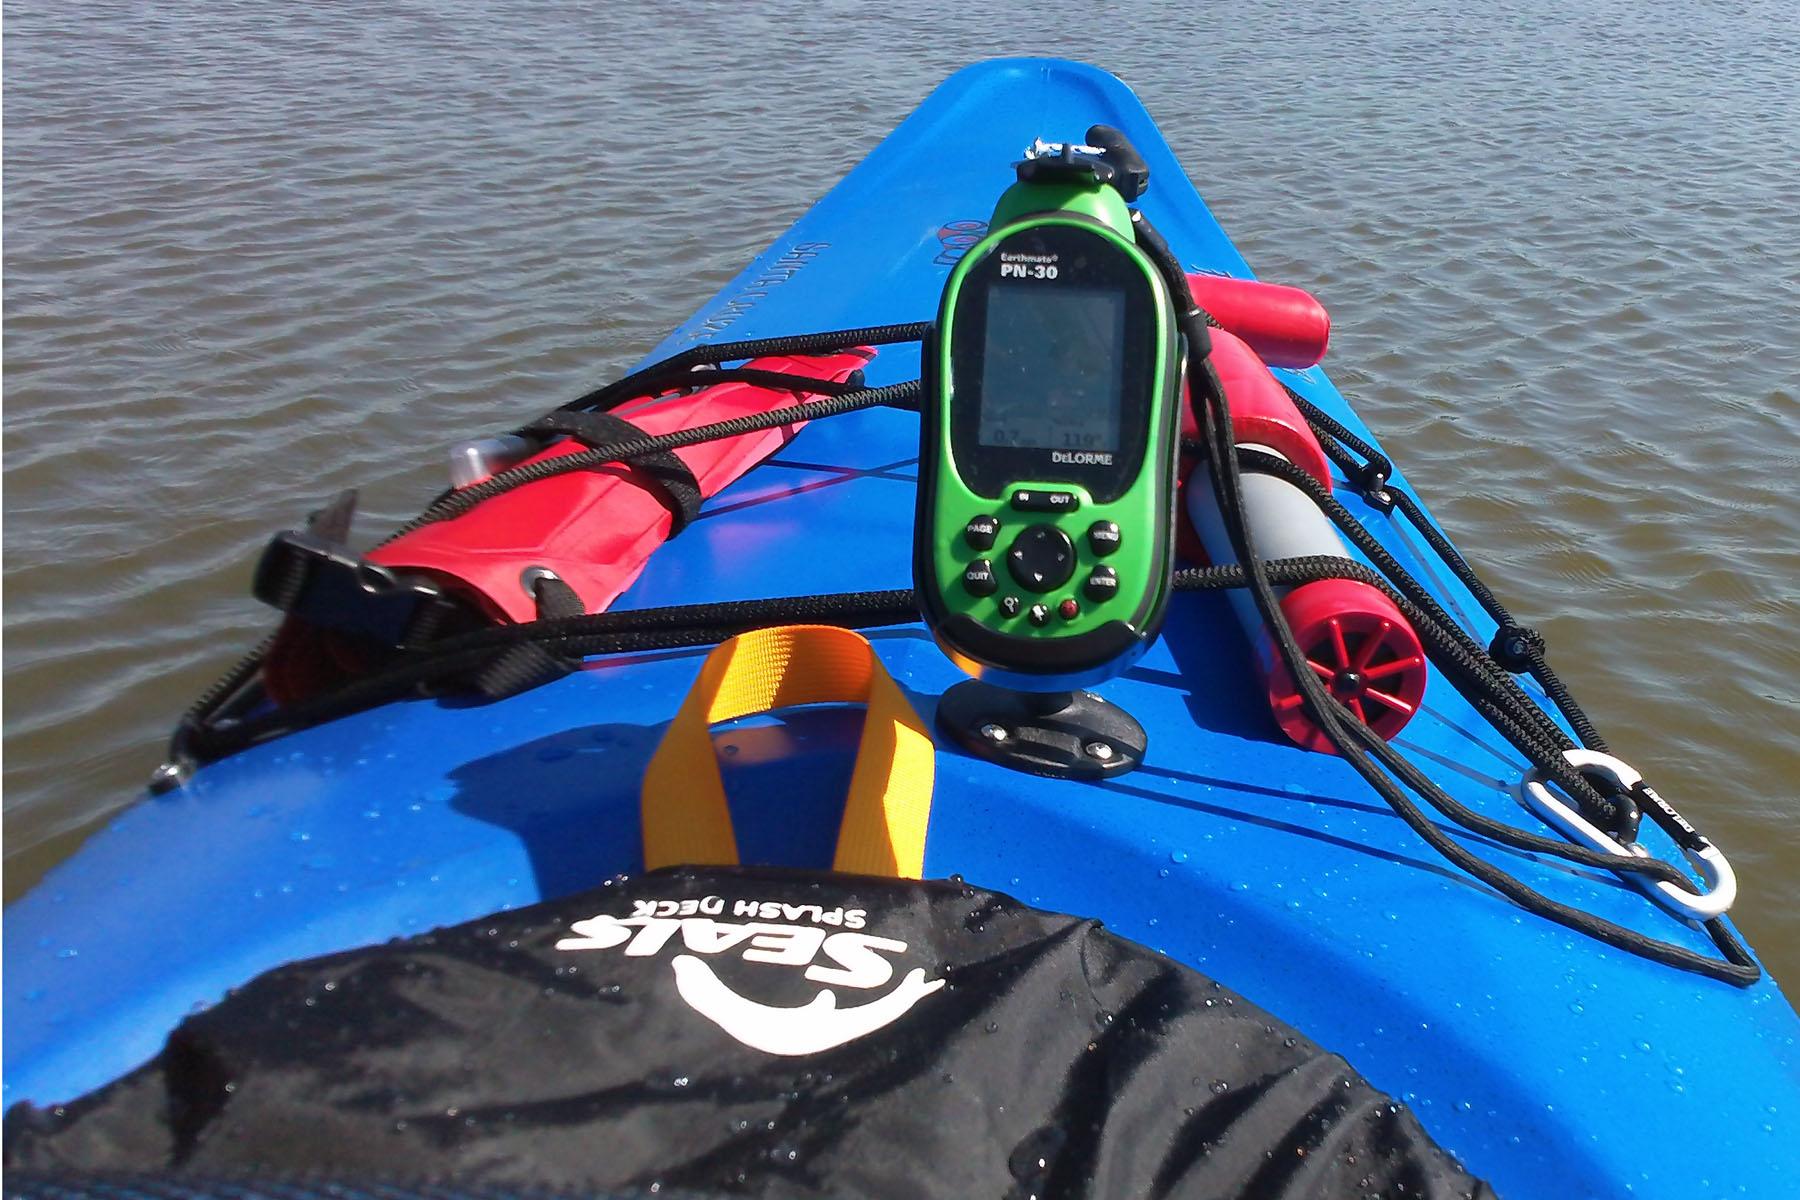 Kayak Gps And Mount Photos And Articles